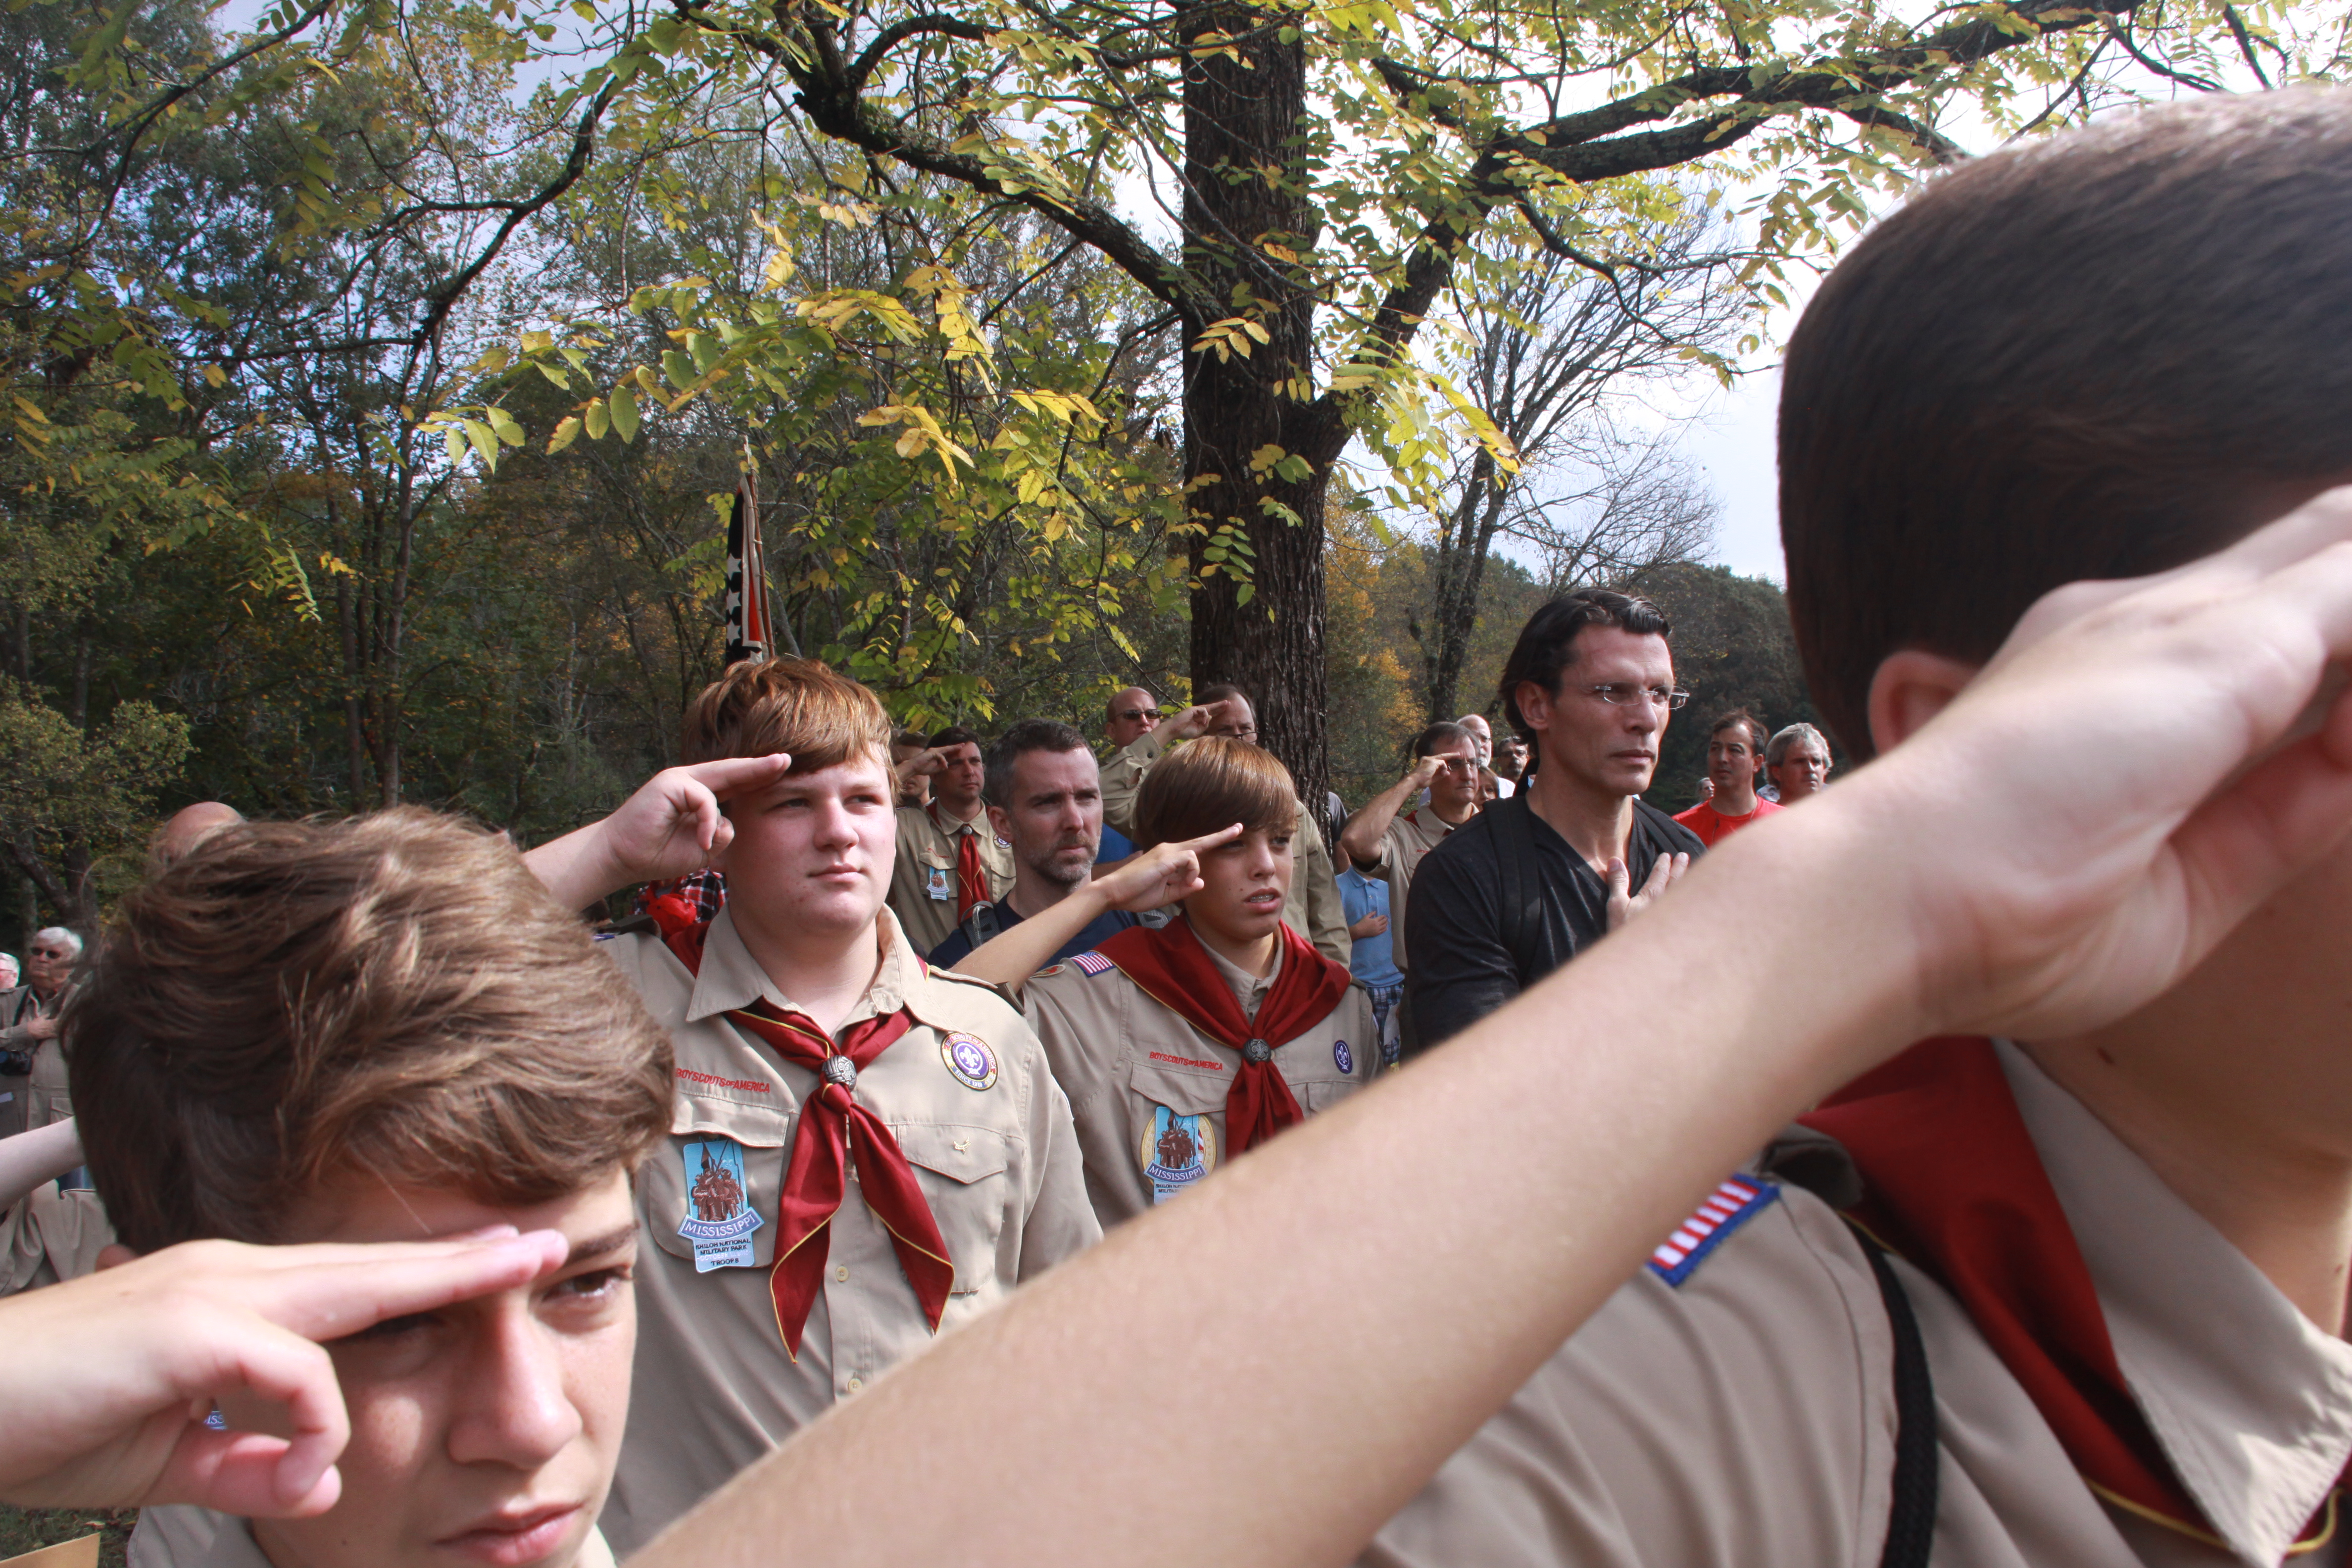 The Boys In Boy Scout Troop 8 Proudly Wearing The Patches On Their Uniforms